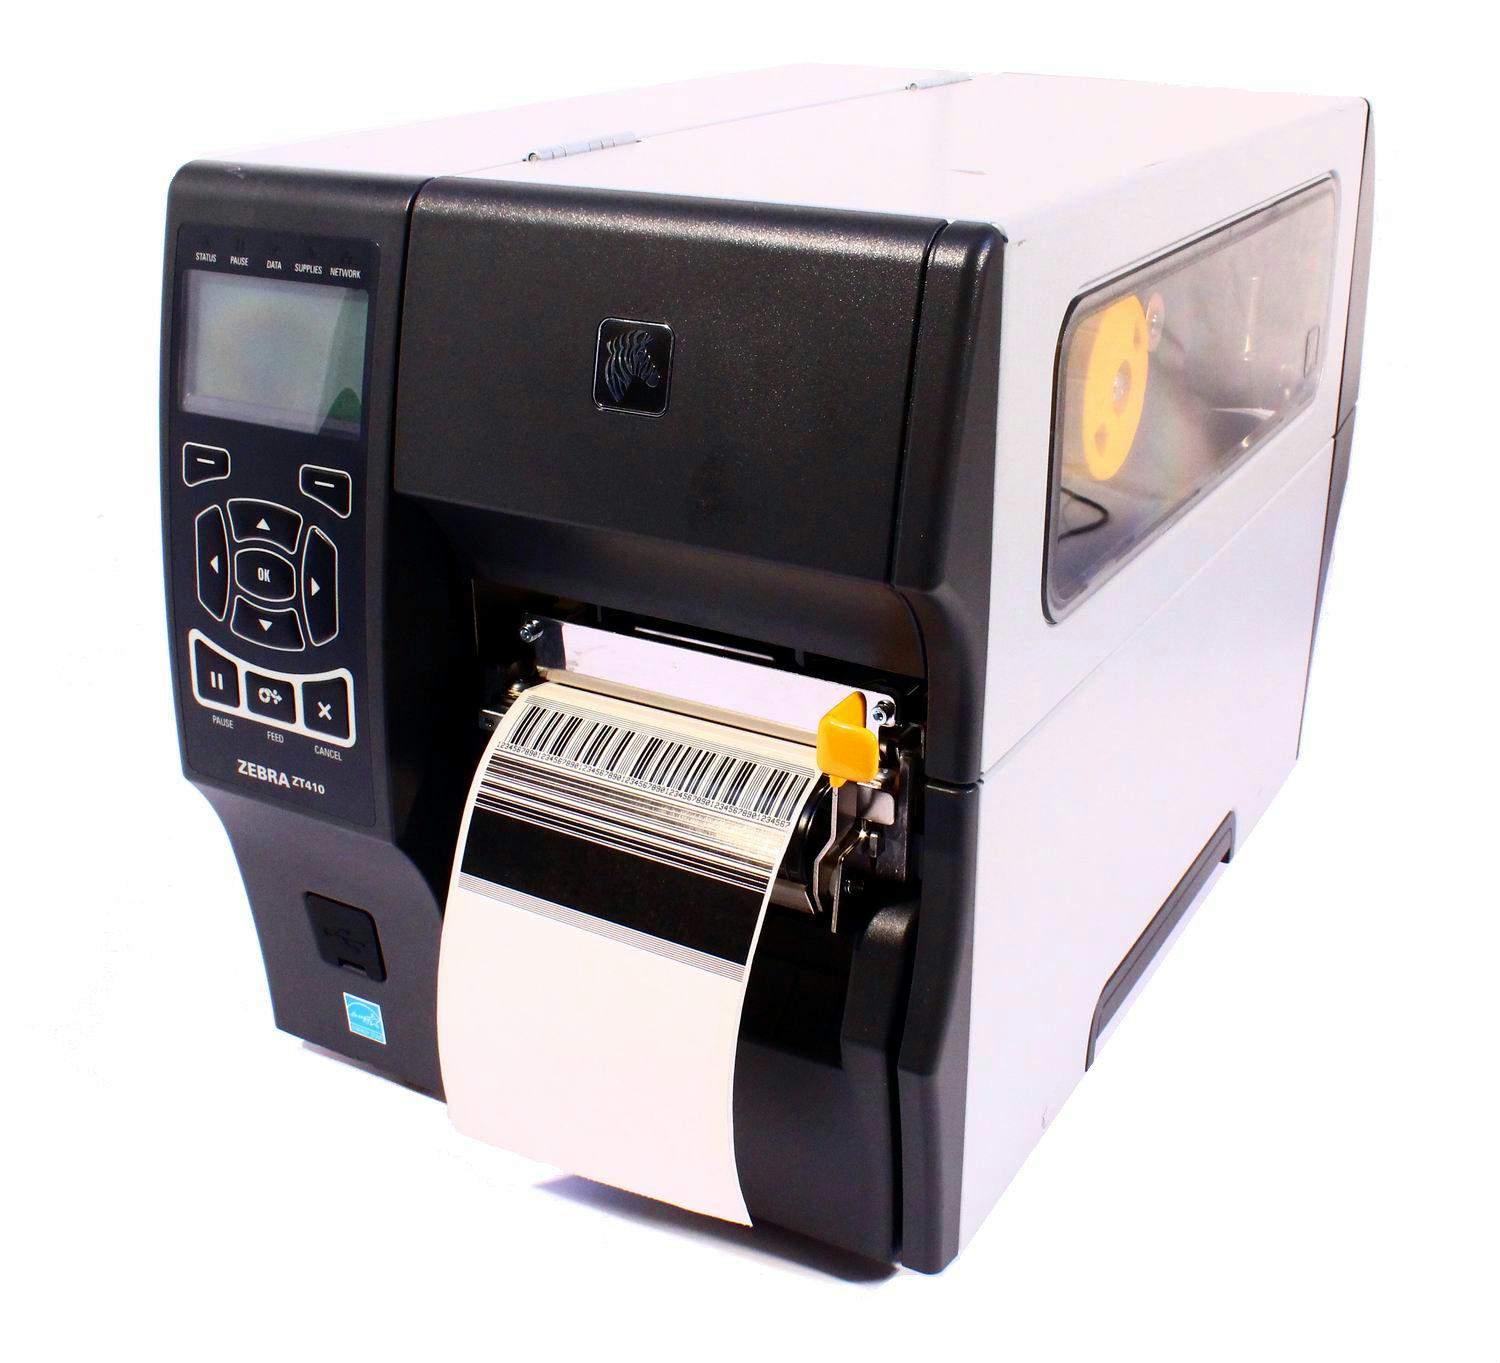 This is a picture of Clever Zebra Gk888t Label Barcode Printer